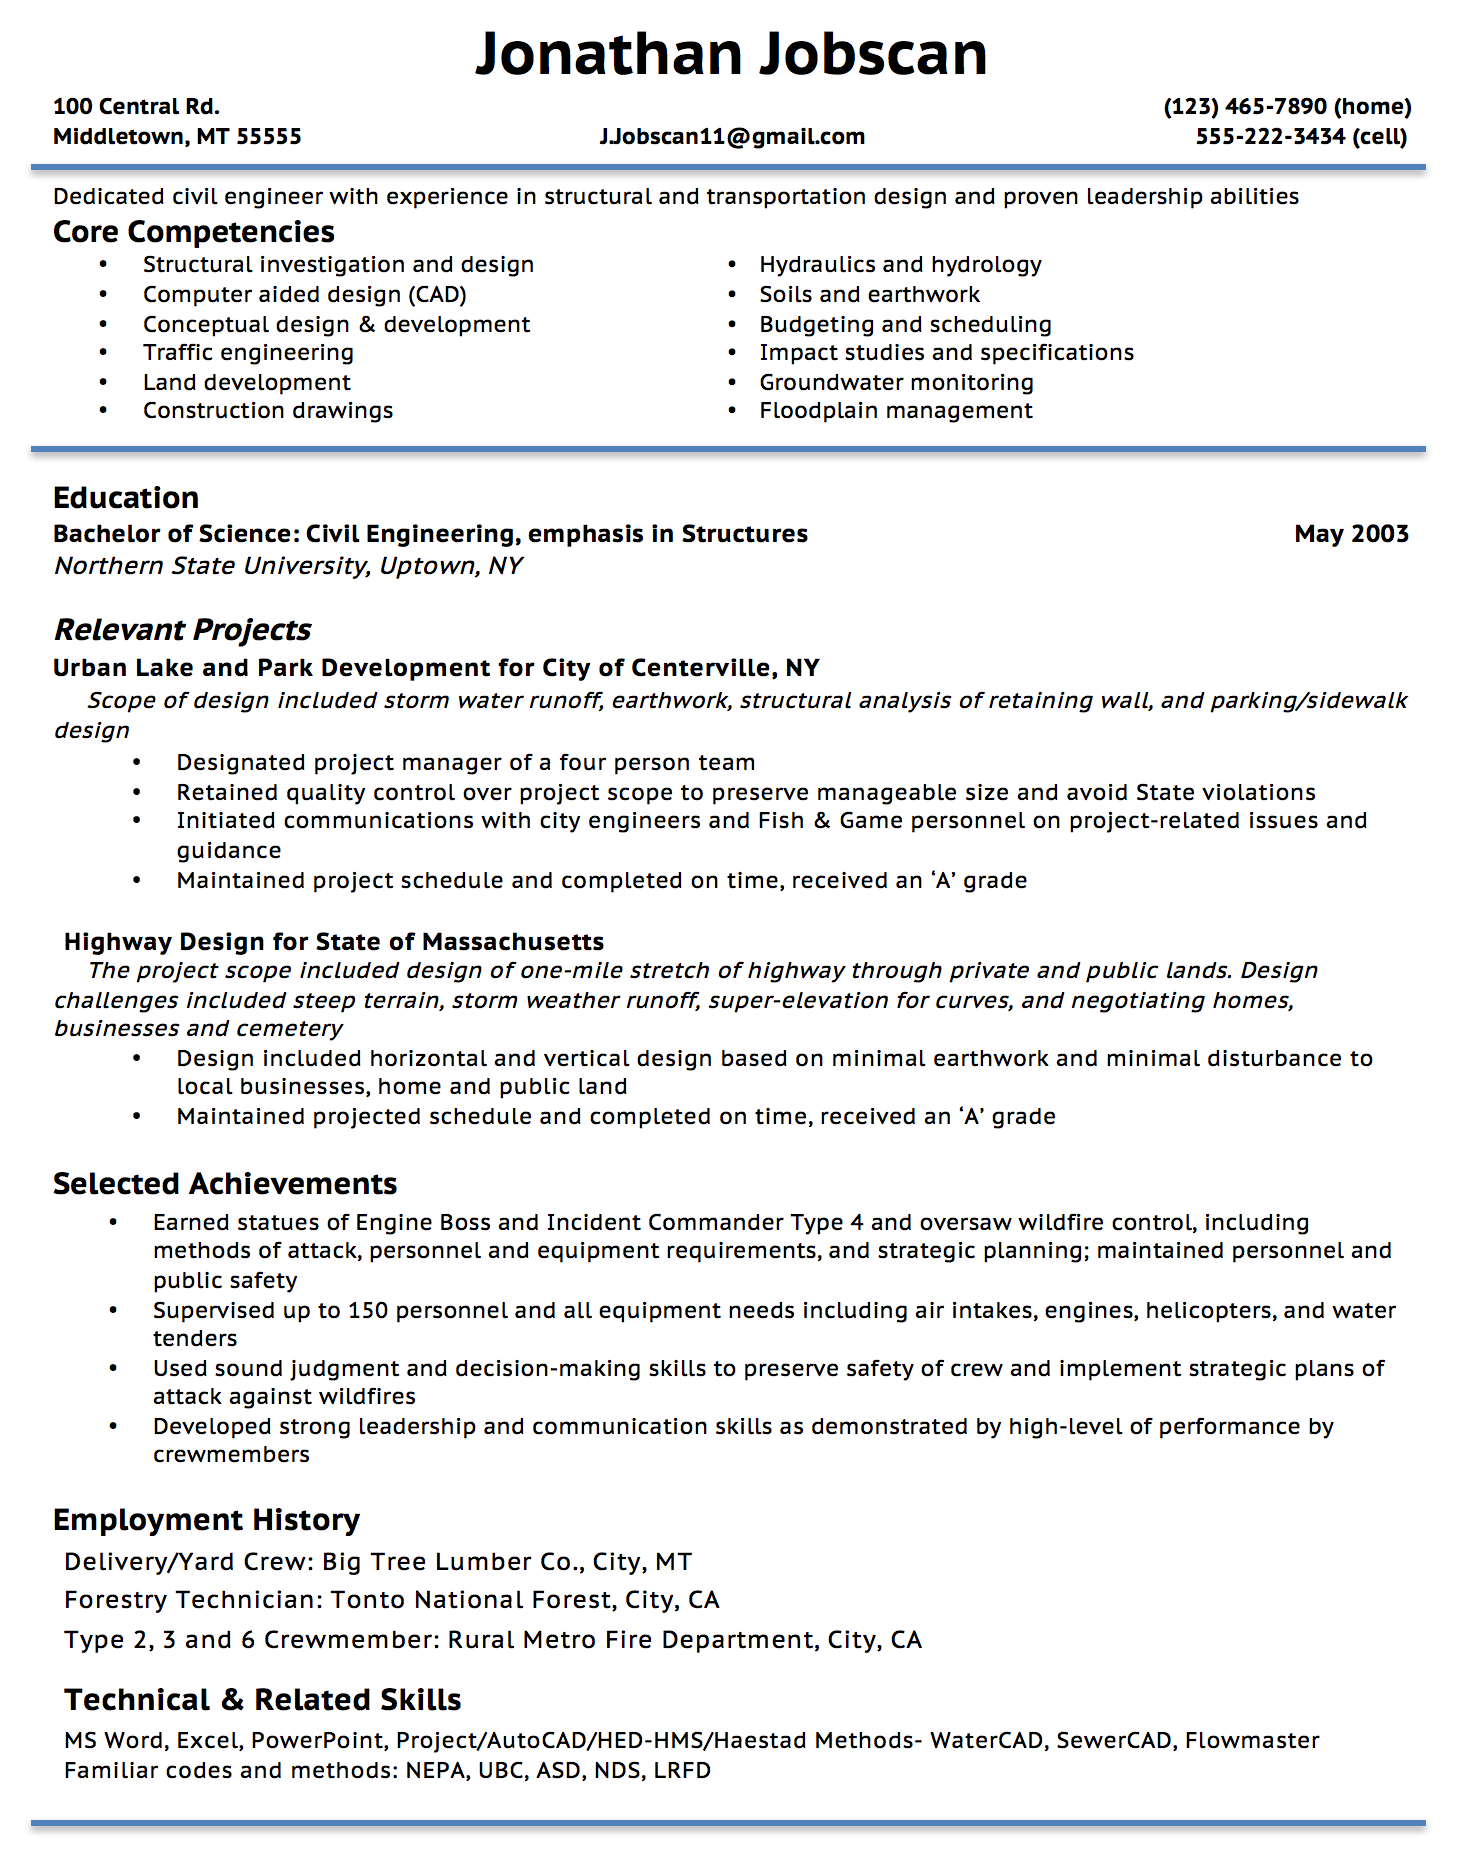 Opposenewapstandardsus  Fascinating Resume Writing Guide  Jobscan With Great Example Of A Functional Resume Format With Delightful Sample Basic Resume Also Simple Objective For Resume In Addition Data Analysis Resume And Free Resume Layout As Well As Good Things To Put On Resume Additionally Word  Resume Templates From Jobscanco With Opposenewapstandardsus  Great Resume Writing Guide  Jobscan With Delightful Example Of A Functional Resume Format And Fascinating Sample Basic Resume Also Simple Objective For Resume In Addition Data Analysis Resume From Jobscanco